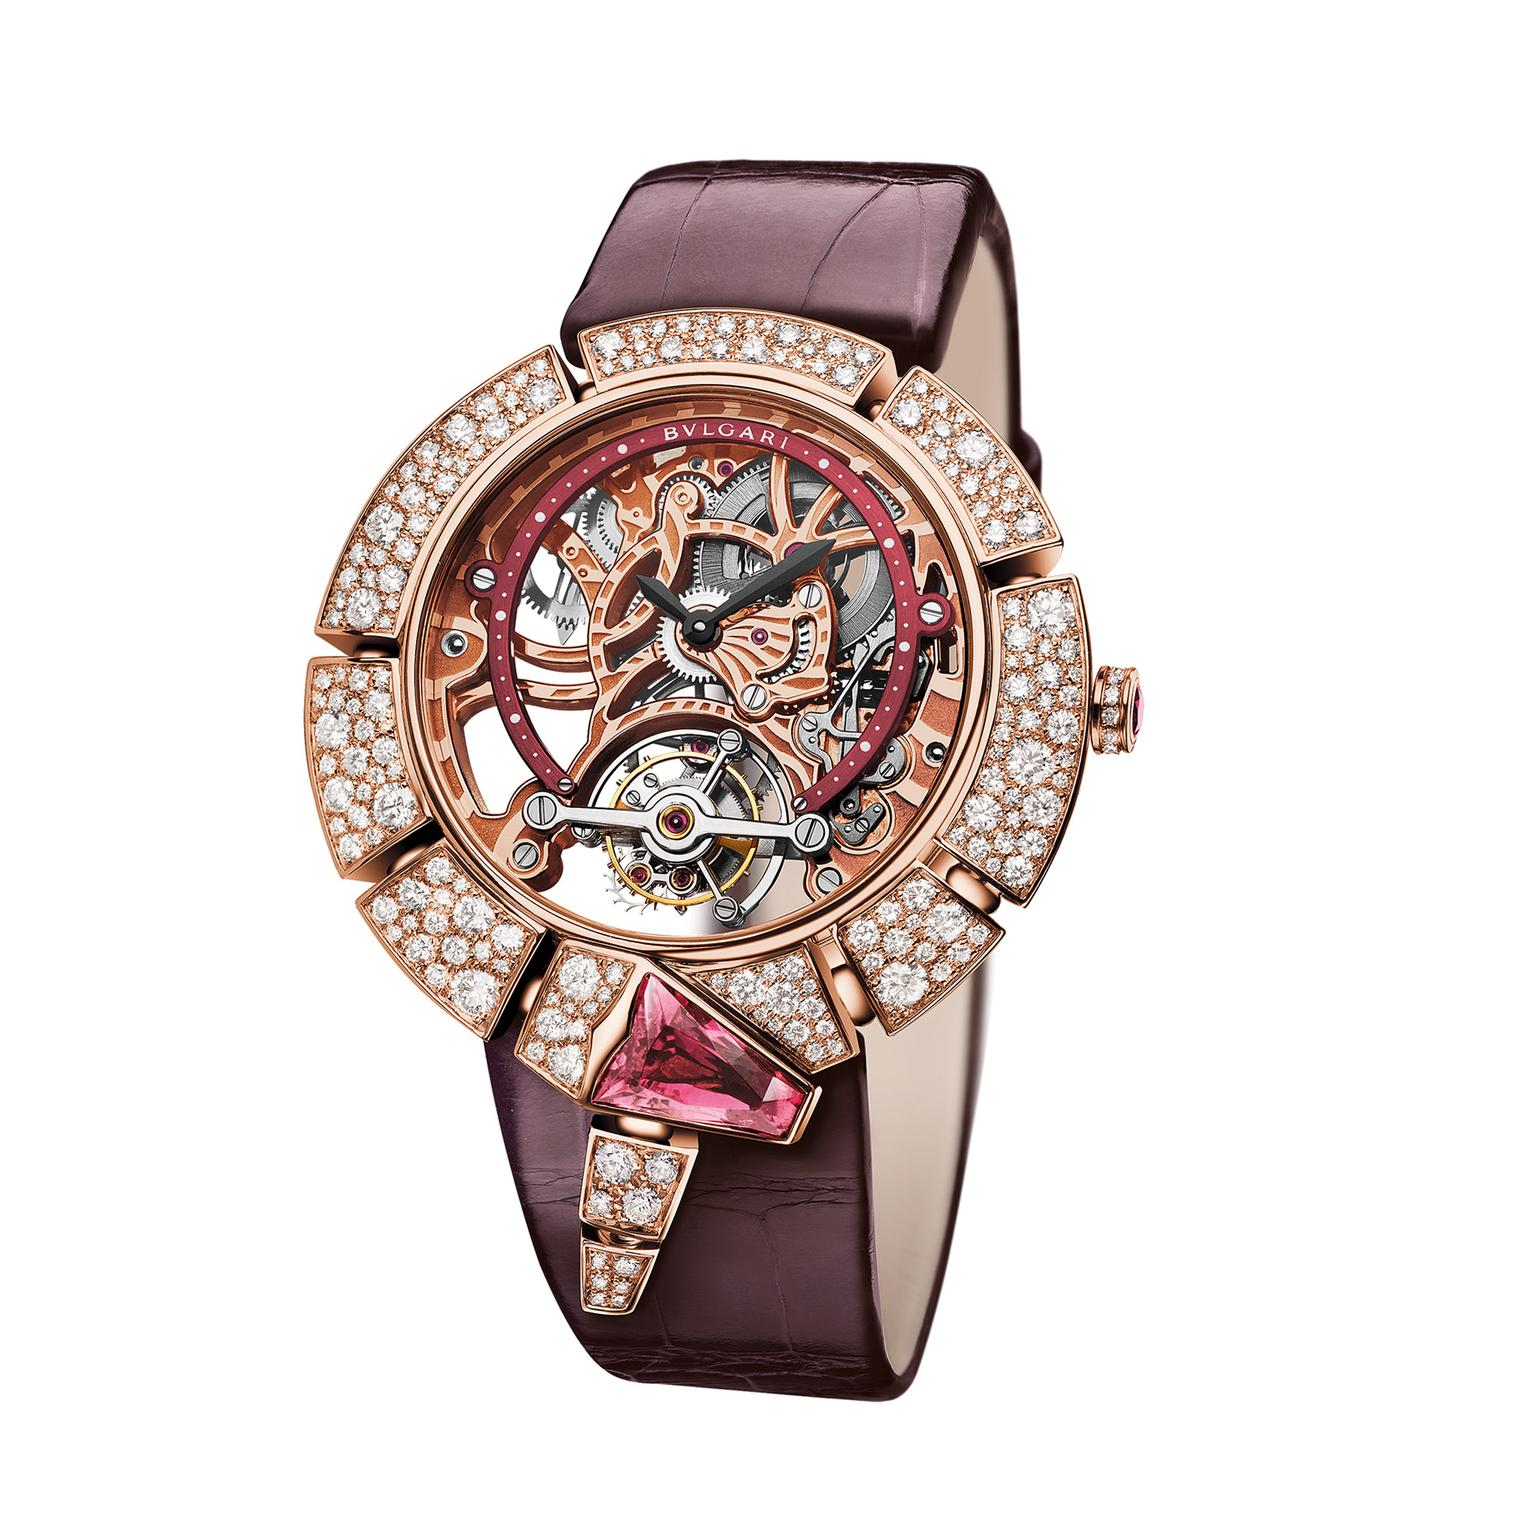 Bulgari Serpenti Incantati Tourbillon Lumiere Skeleton watch